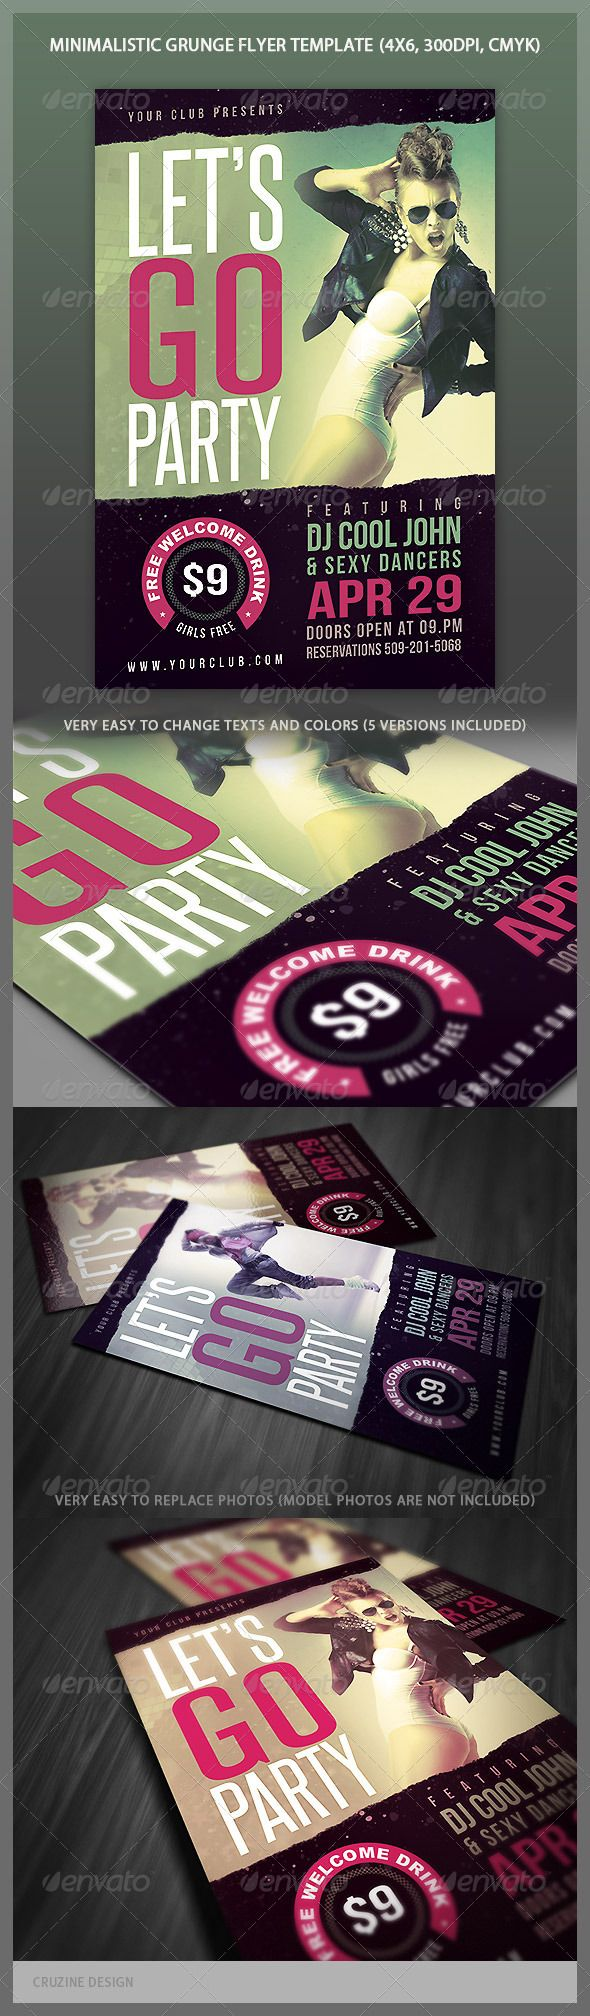 115 best FLYERS images on Pinterest | Page layout, Editorial design ...